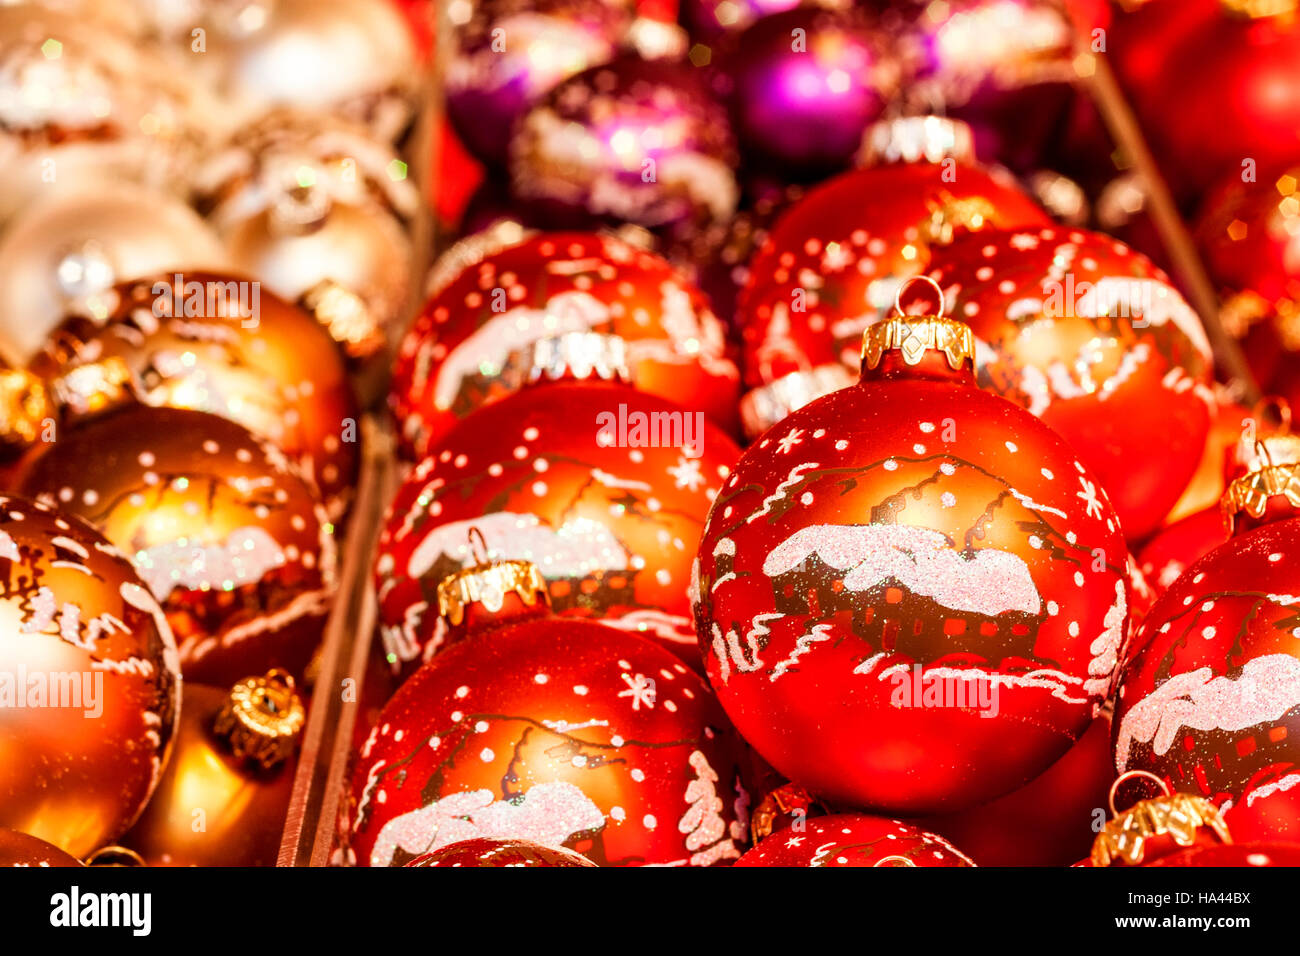 Traditional christmas balls with decorative ornaments with beautiful winter scene with houses, hills, stars and - Stock Image